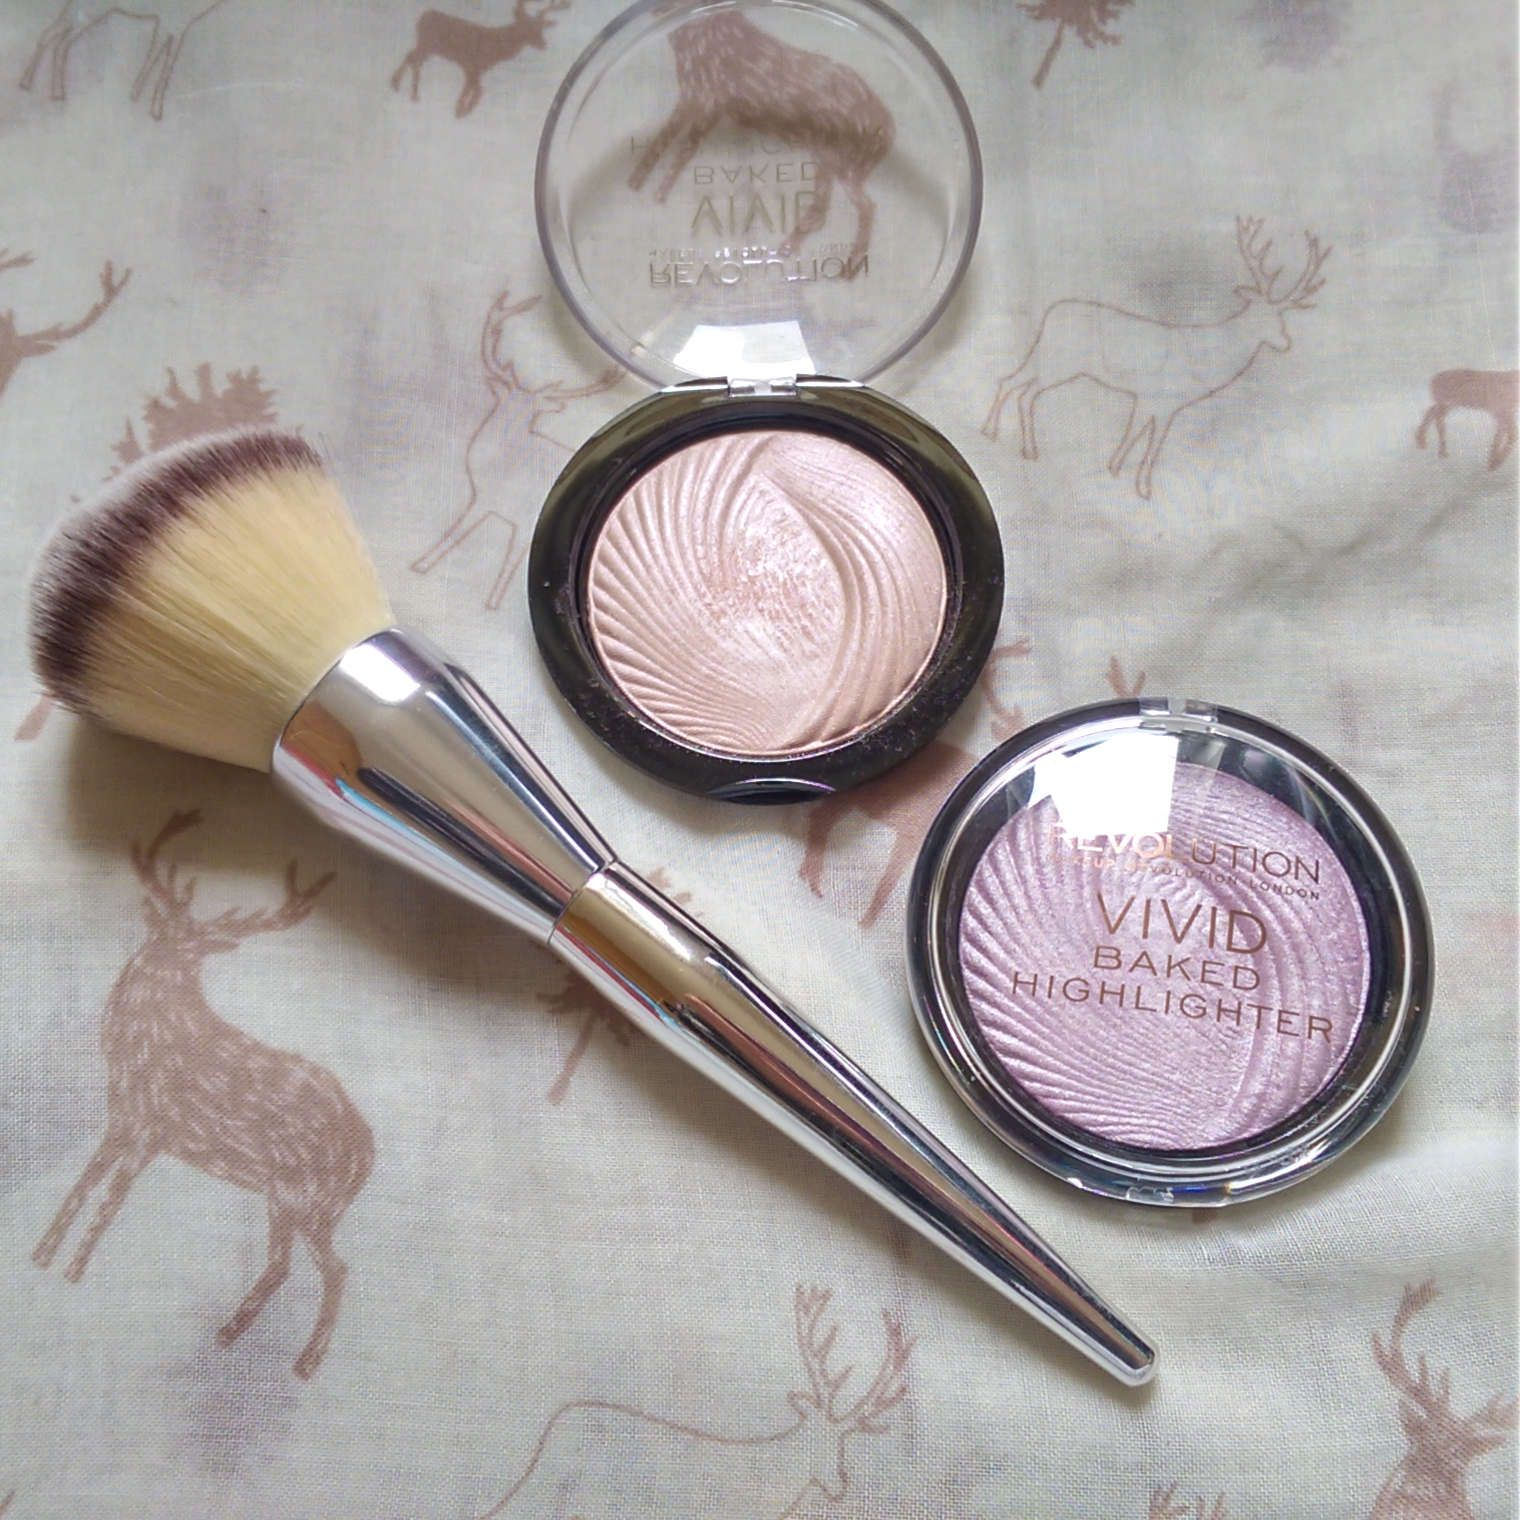 Revolution Vivid Baked Highlighters in Pink Lights and